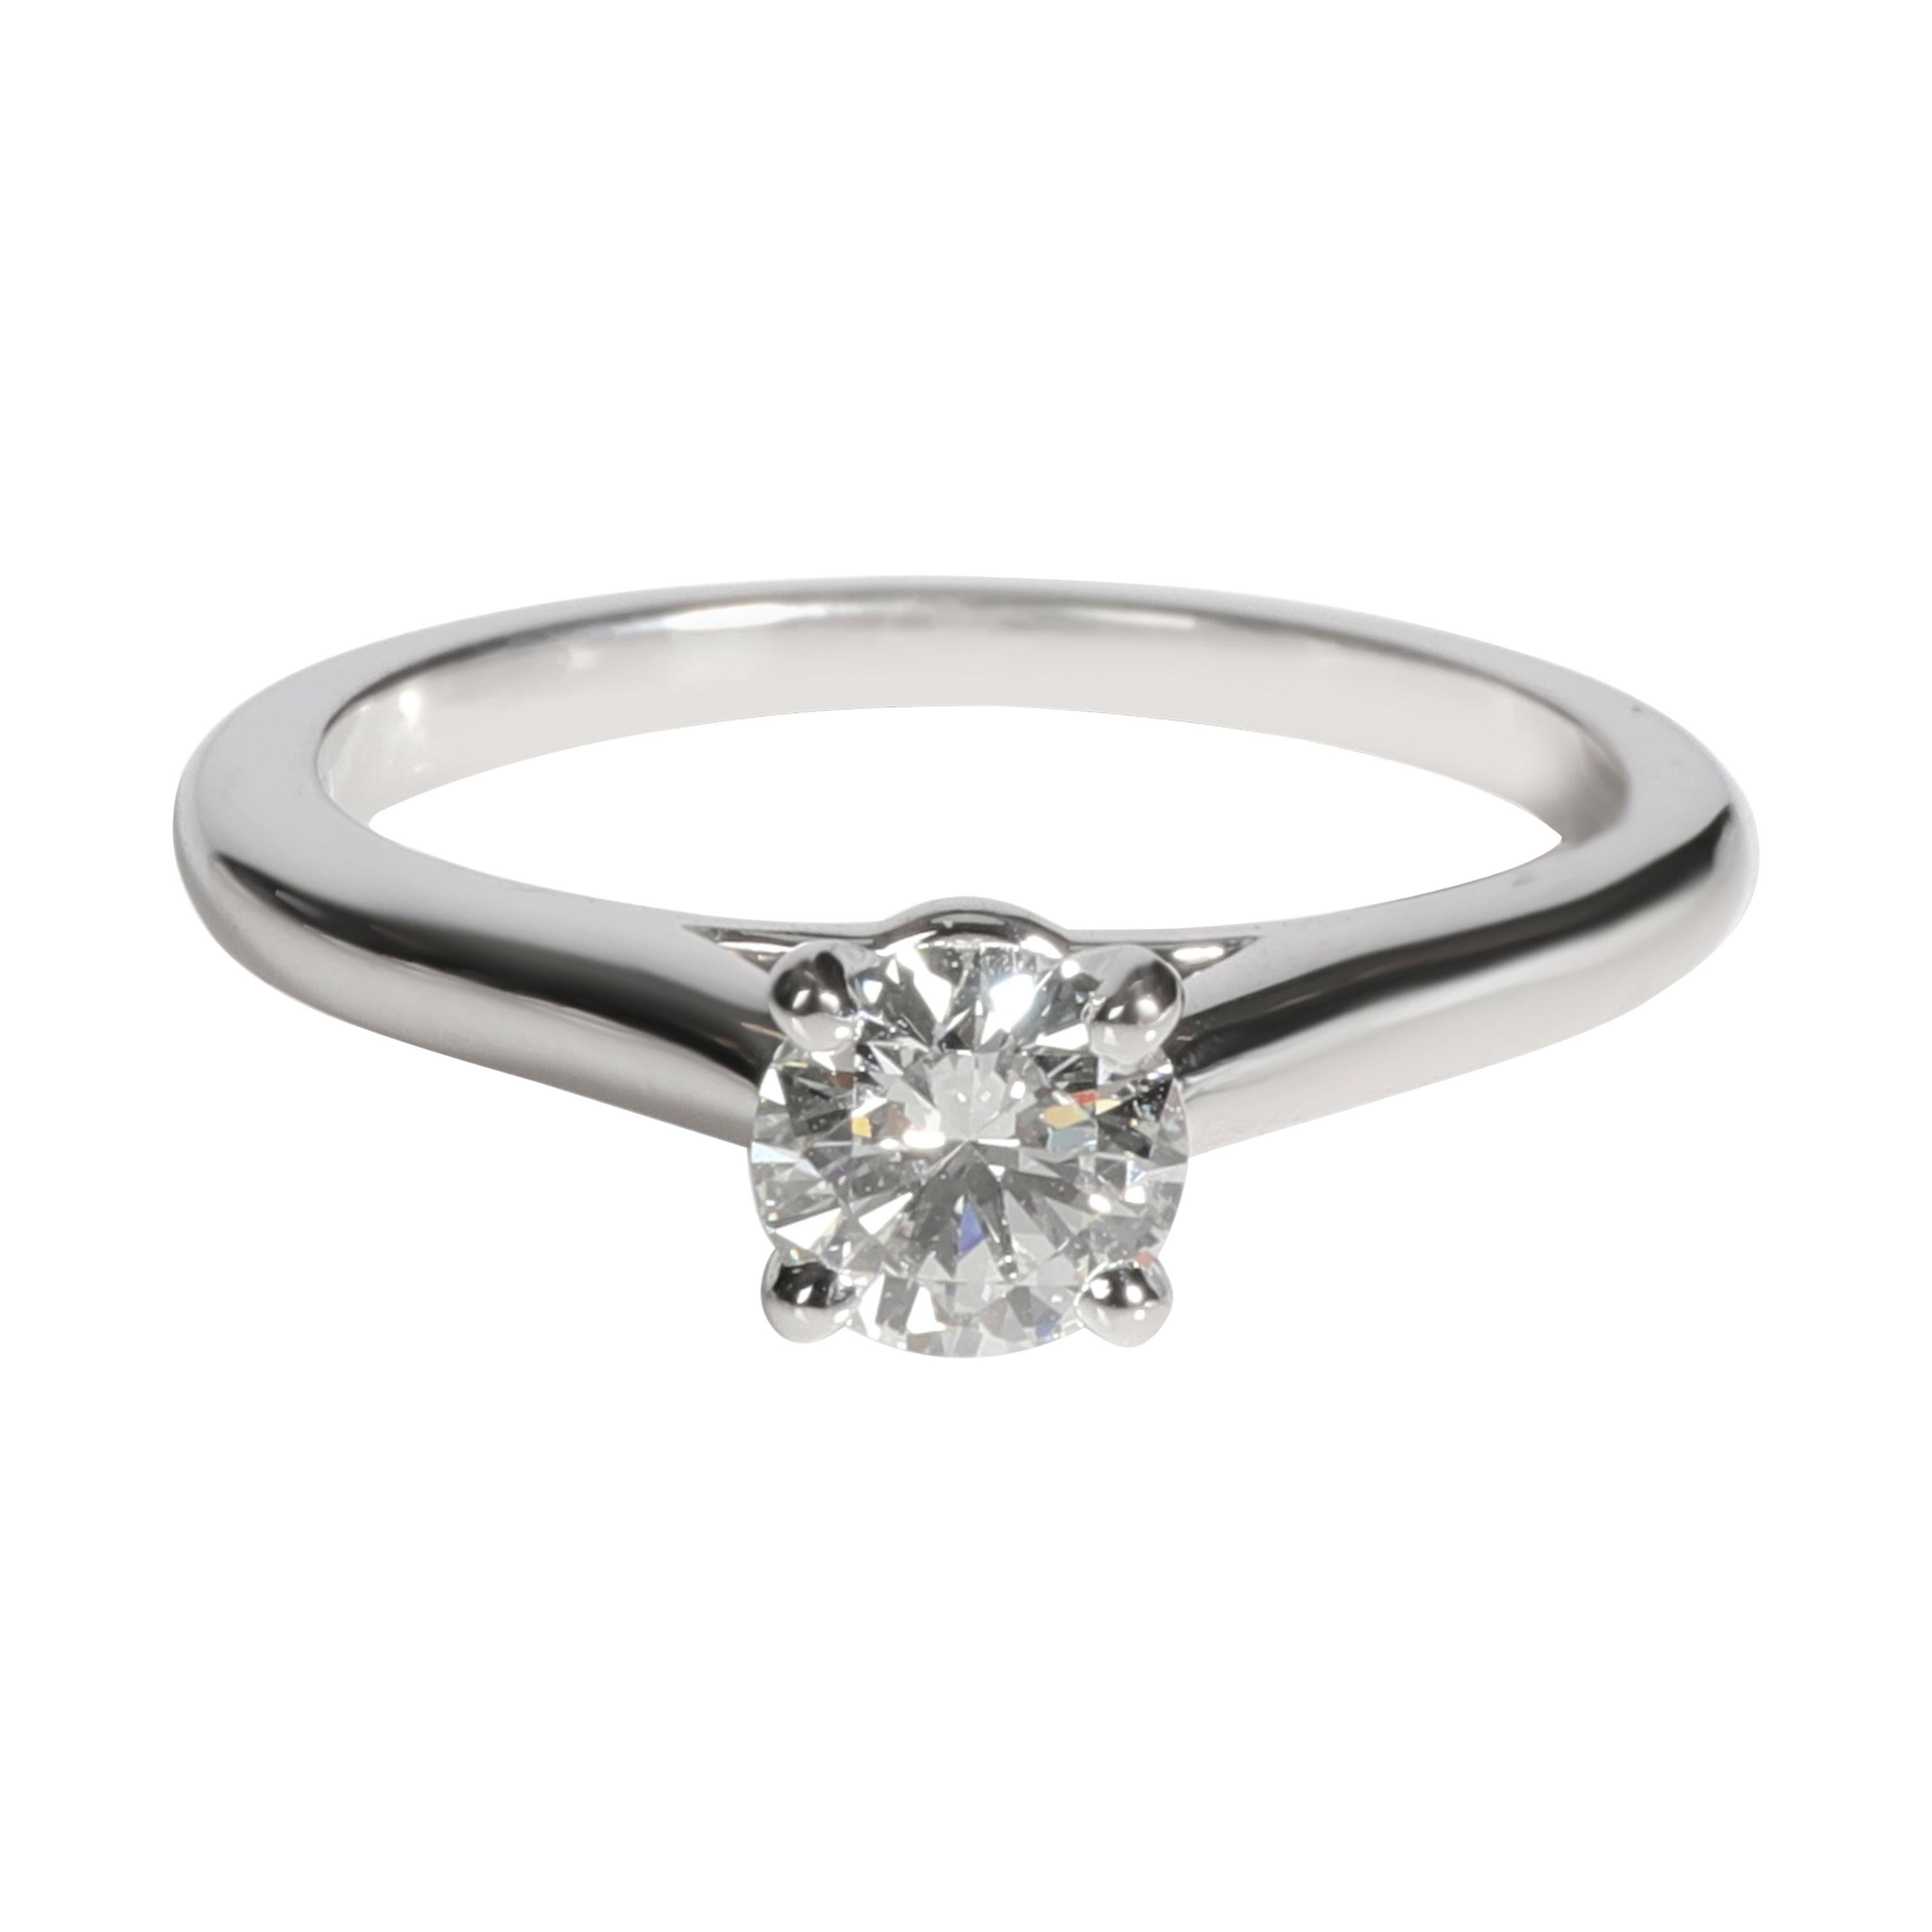 Cartier 1895 Diamond Solitaire Ring in Platinum GIA Certified G VVS2 0.38 CTW